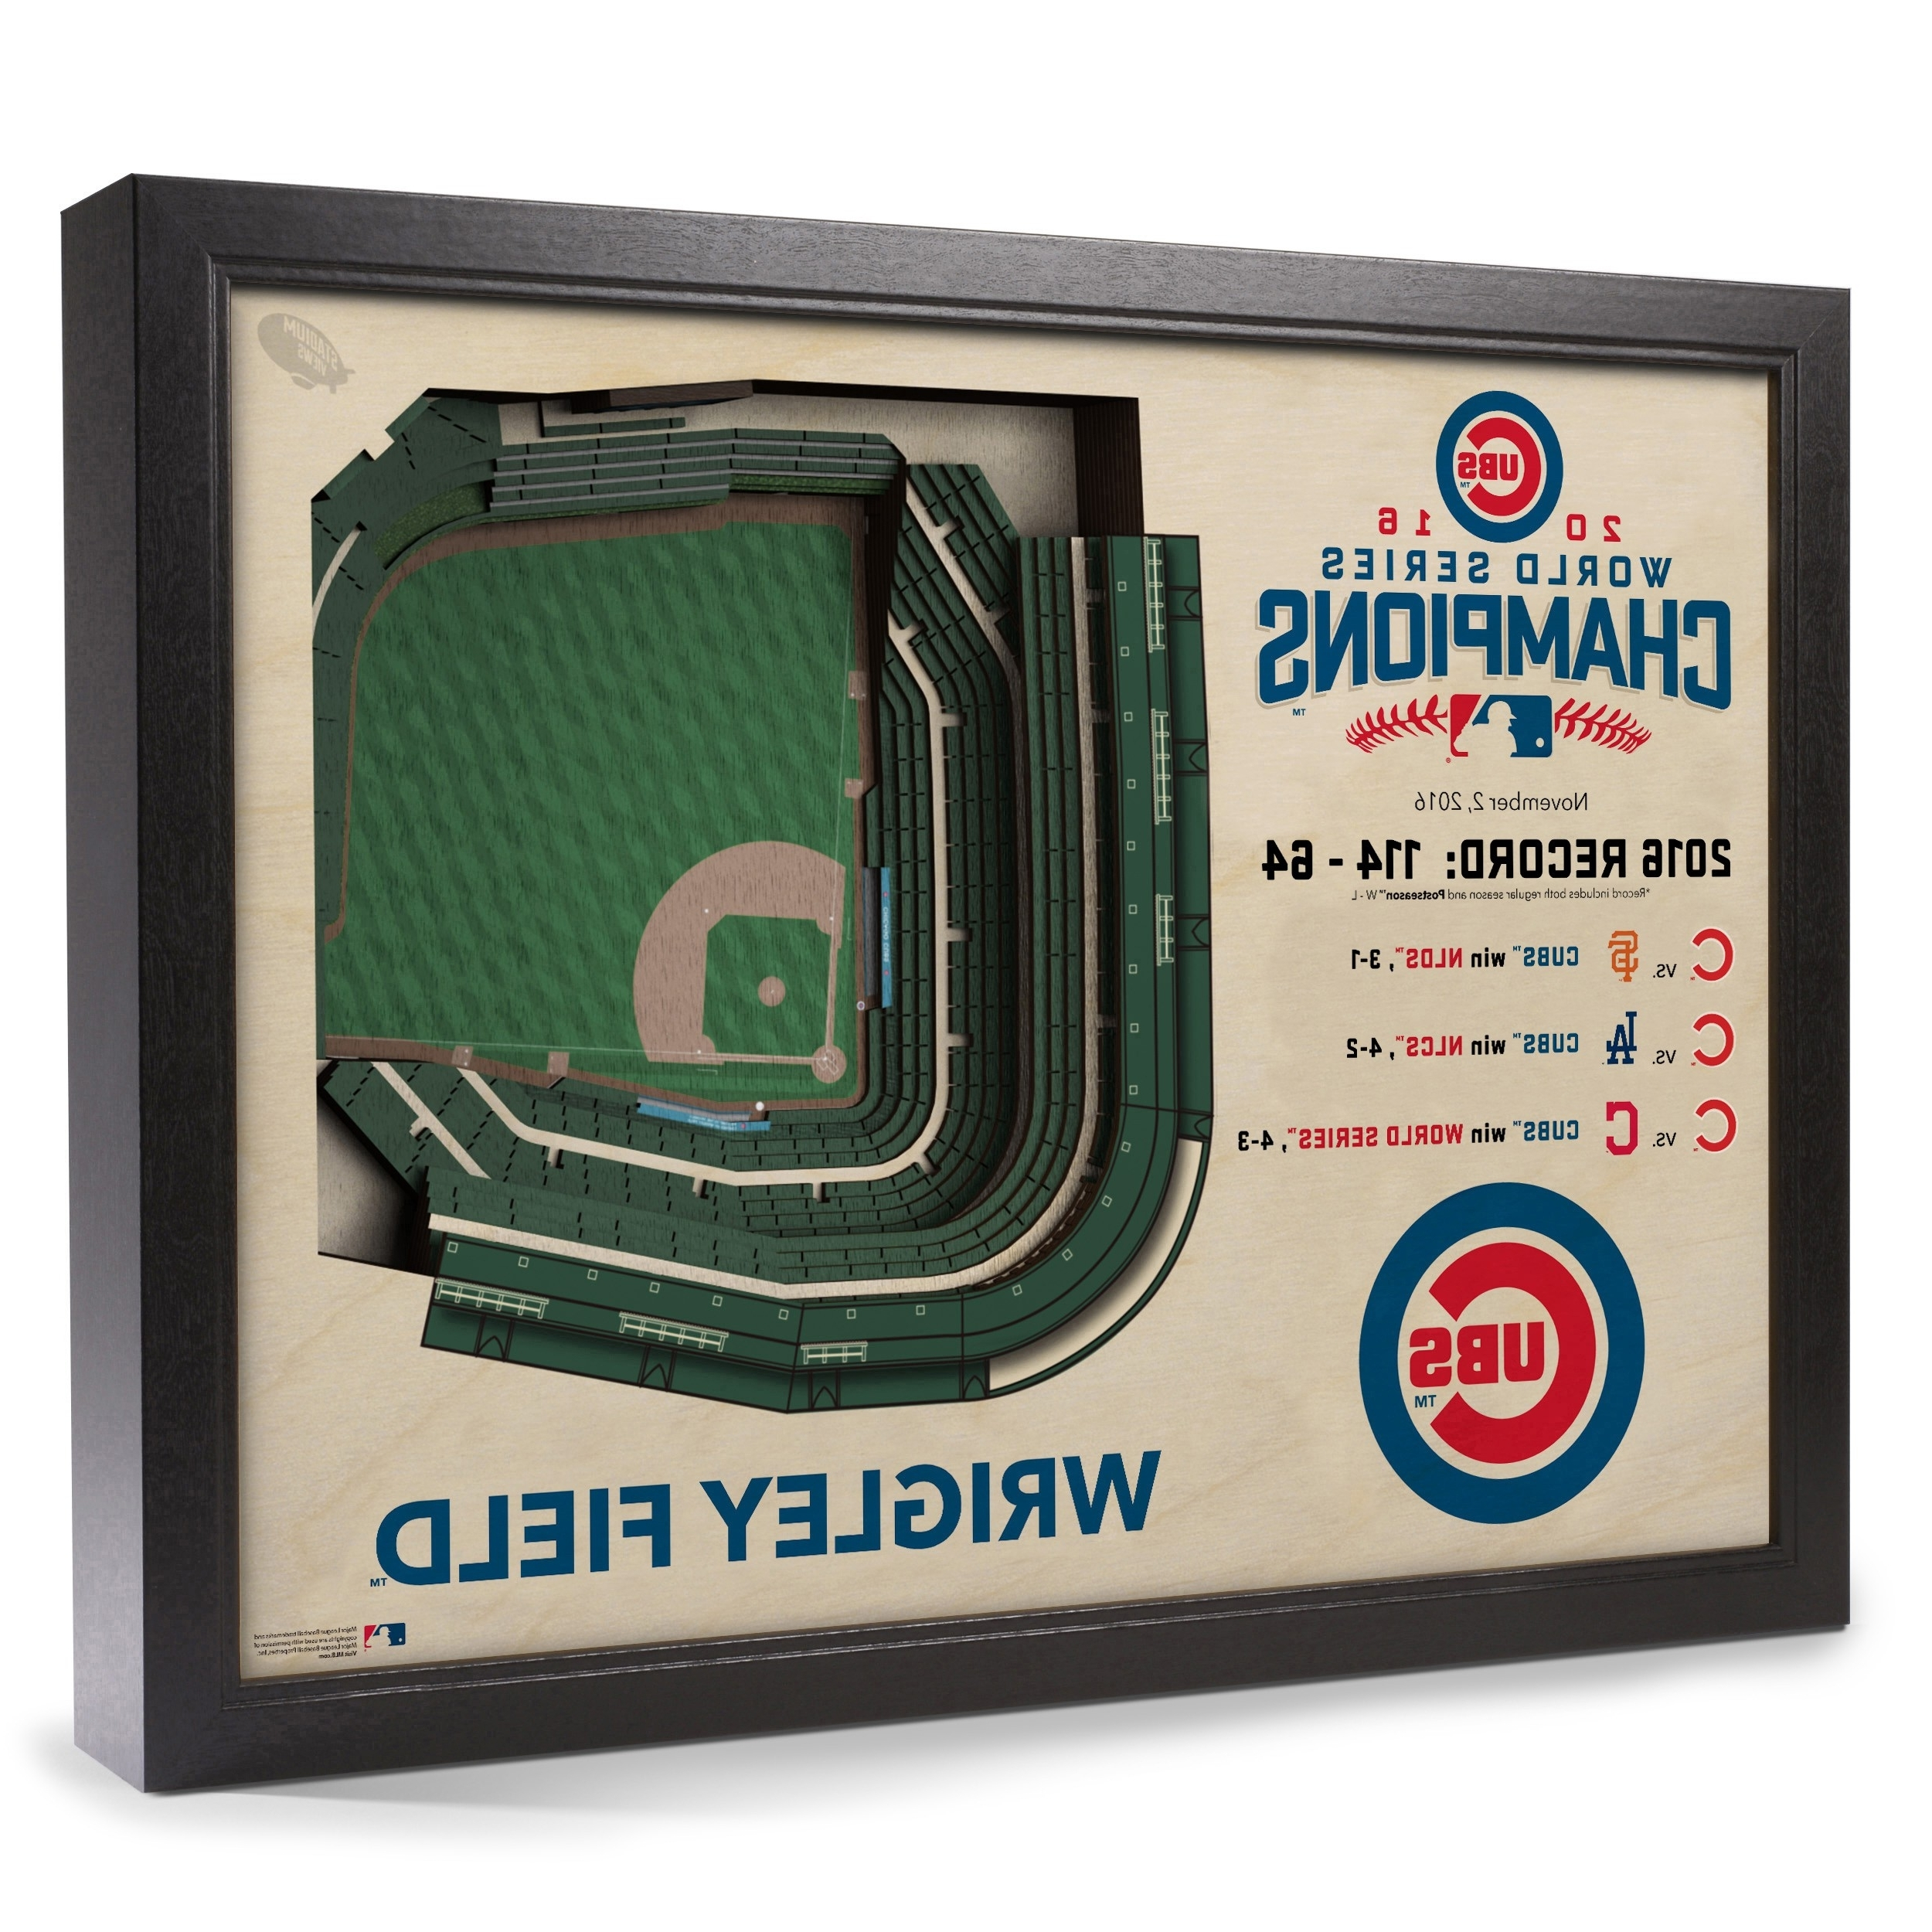 Latest 2016 World Series Champions Chicago Cubs Stadiumview Wall Art Within Chicago Cubs Wall Art (View 6 of 15)